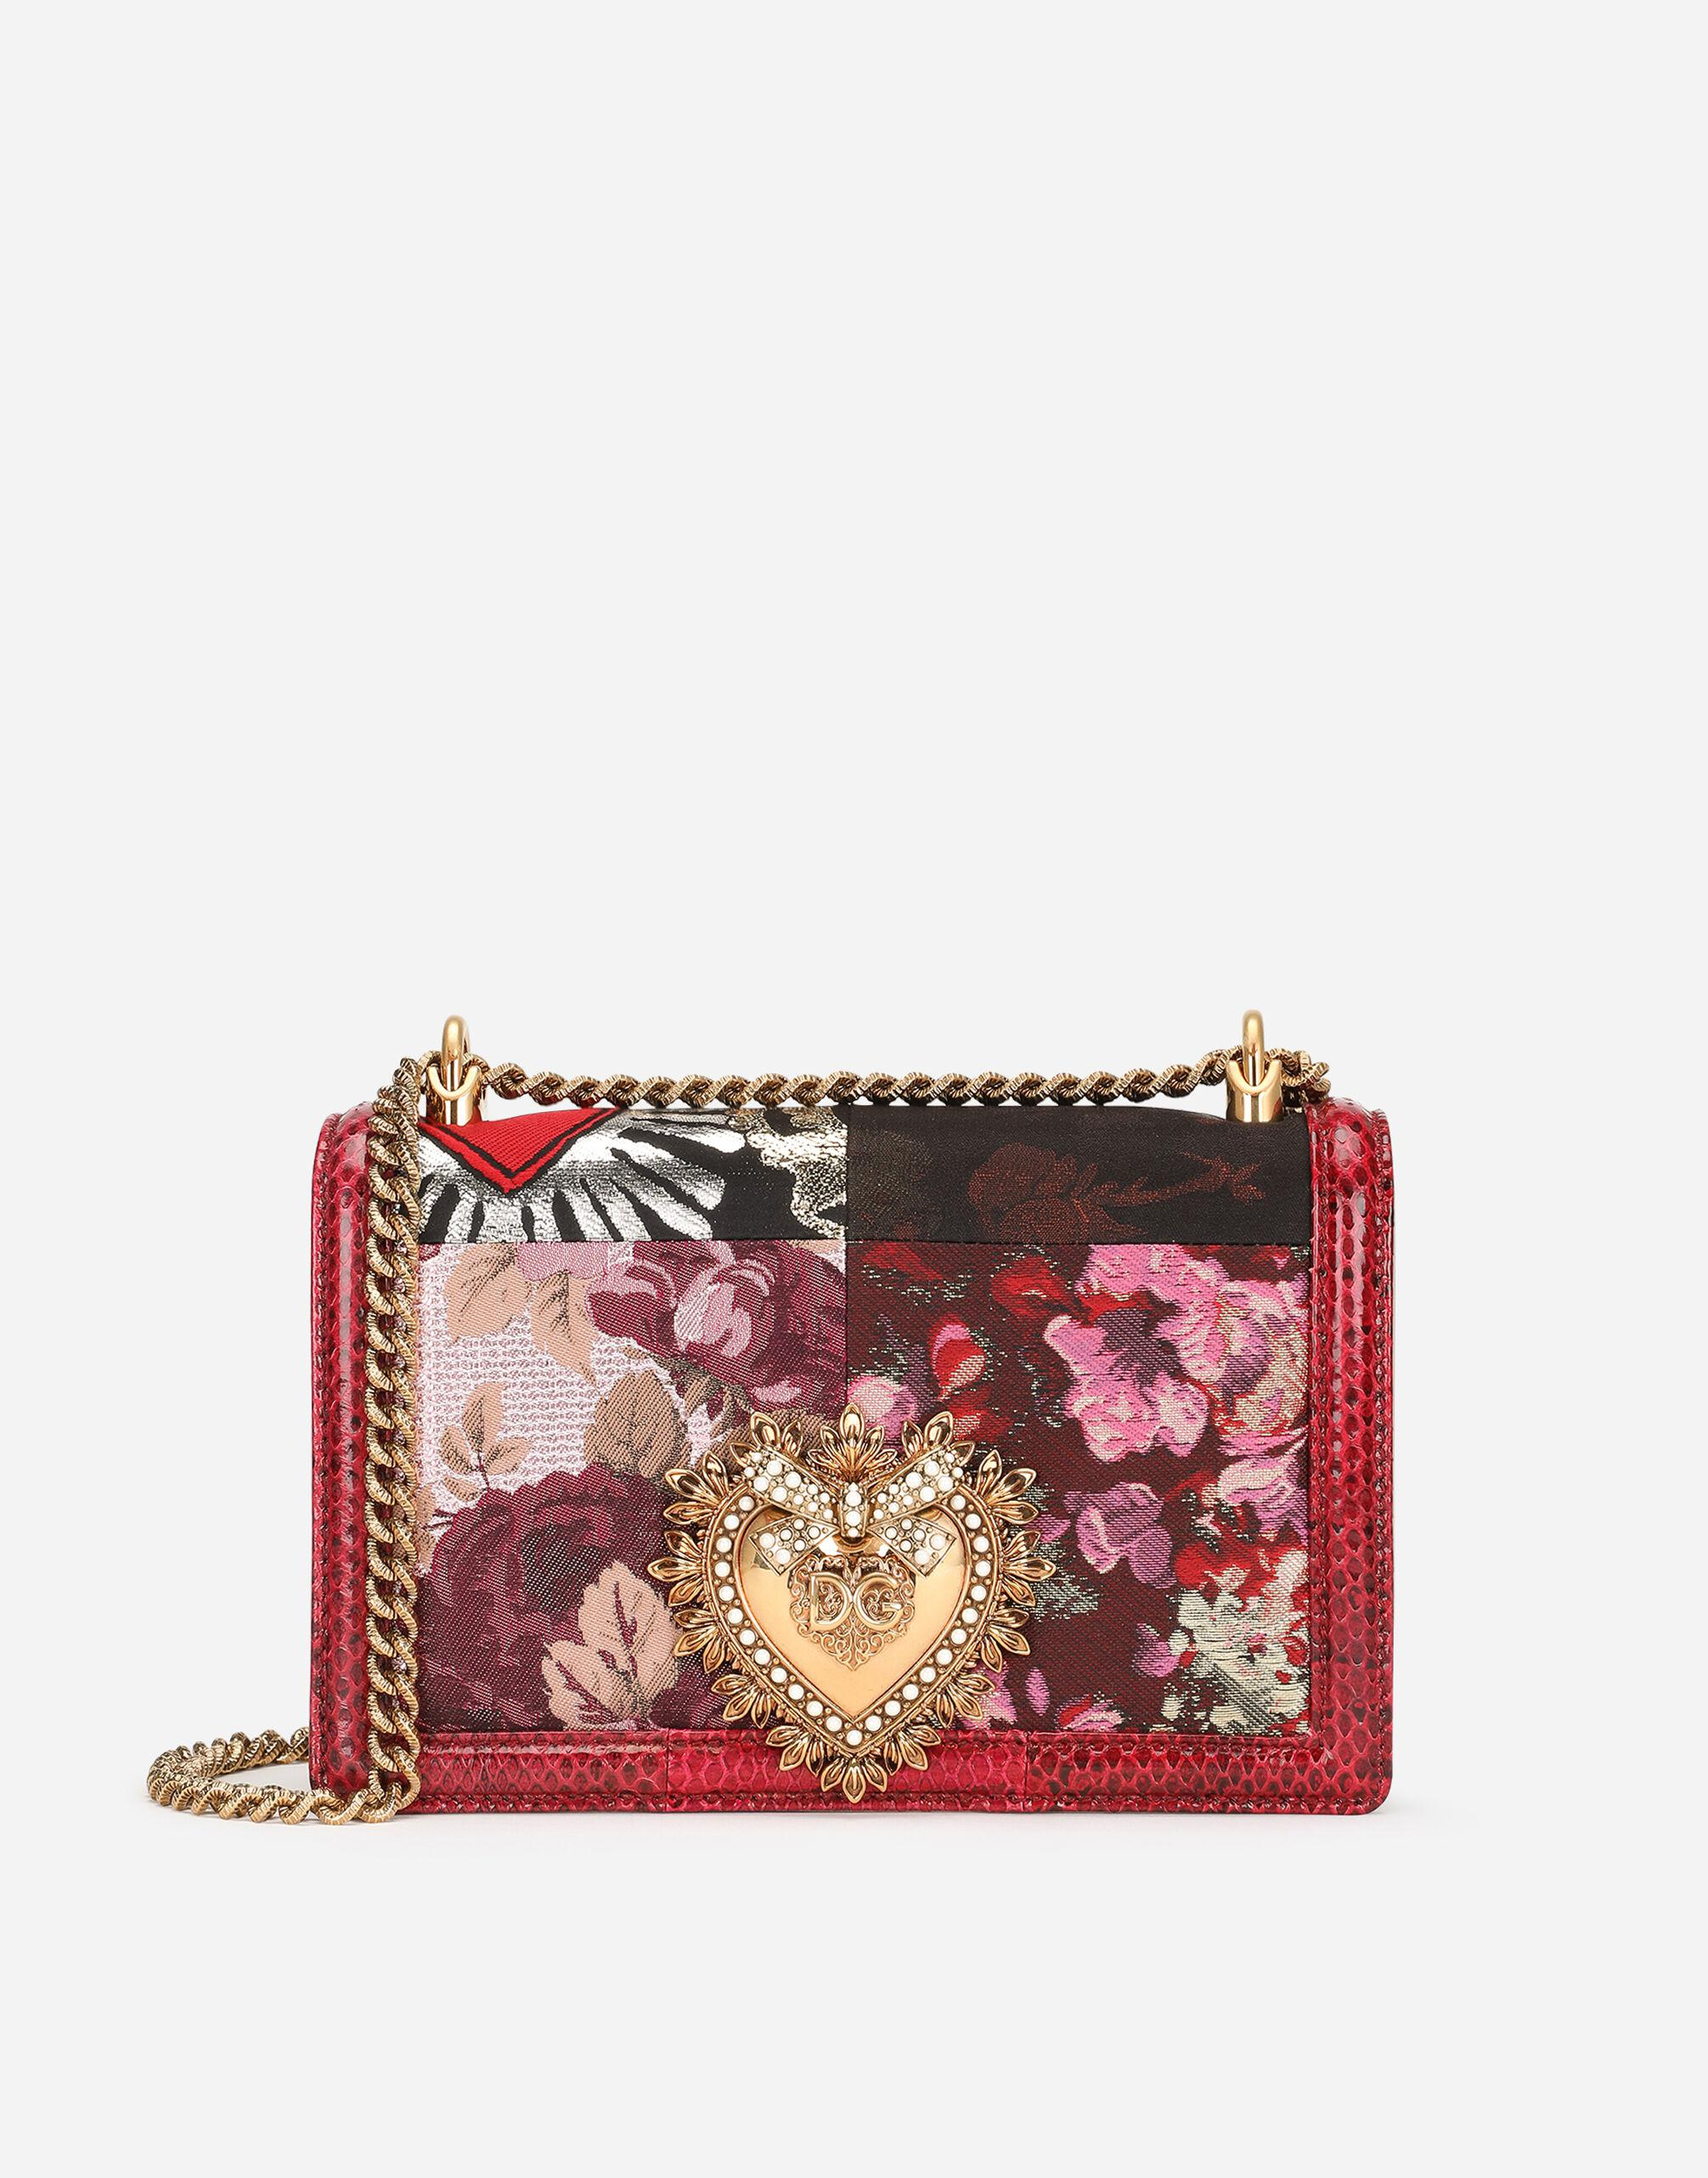 Medium Devotion bag in patchwork fabric and ayers